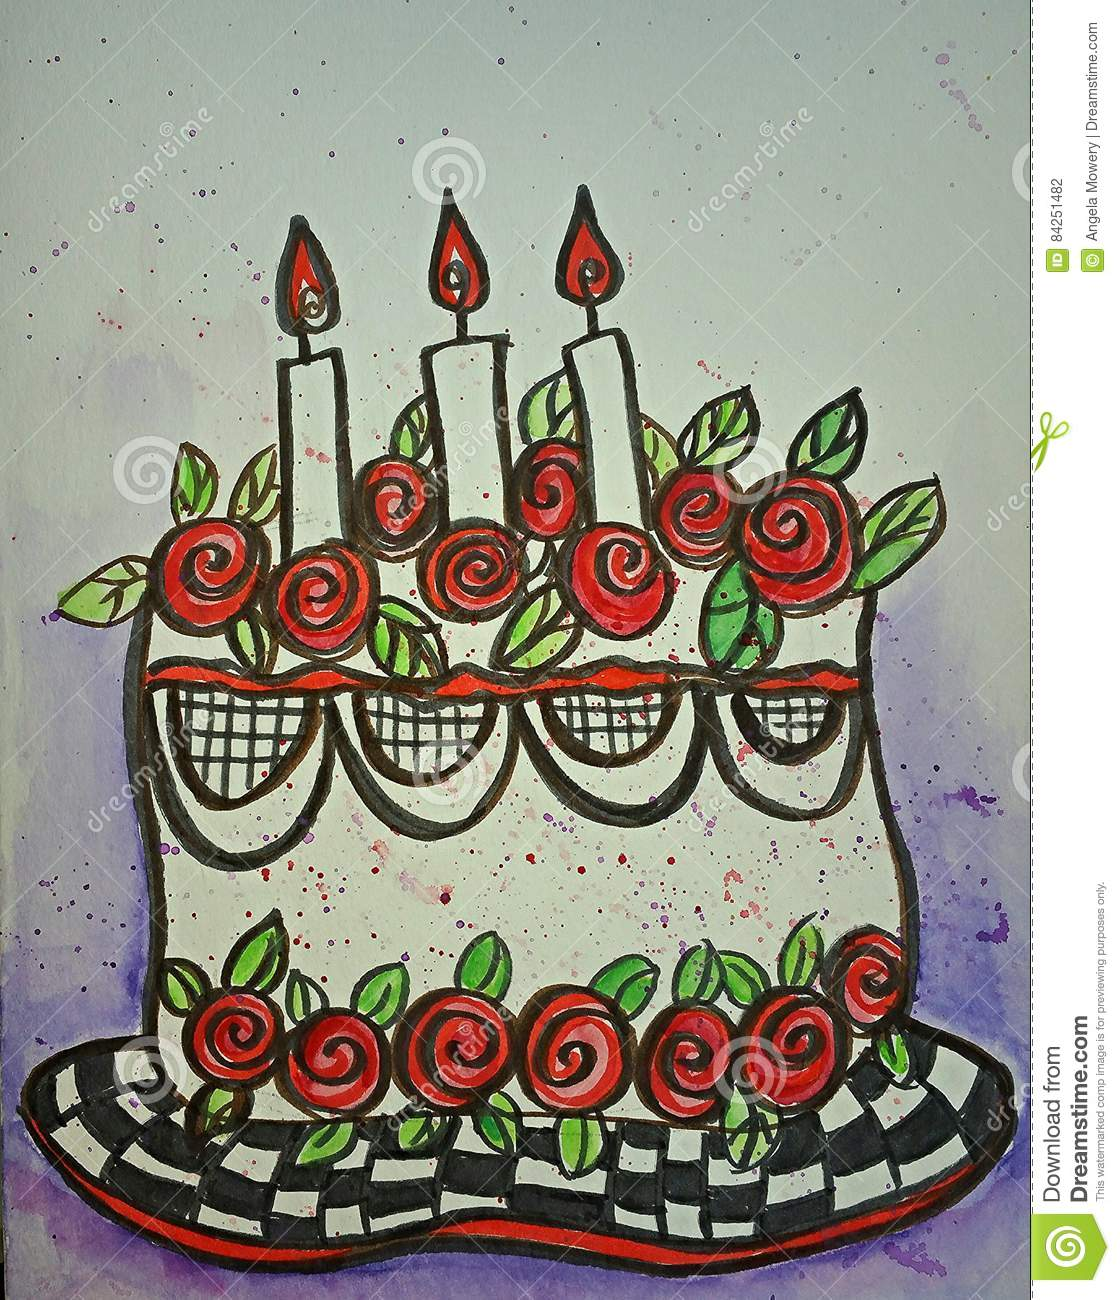 Sensational Birthday Cake Illustration Stock Illustration Illustration Of Personalised Birthday Cards Veneteletsinfo